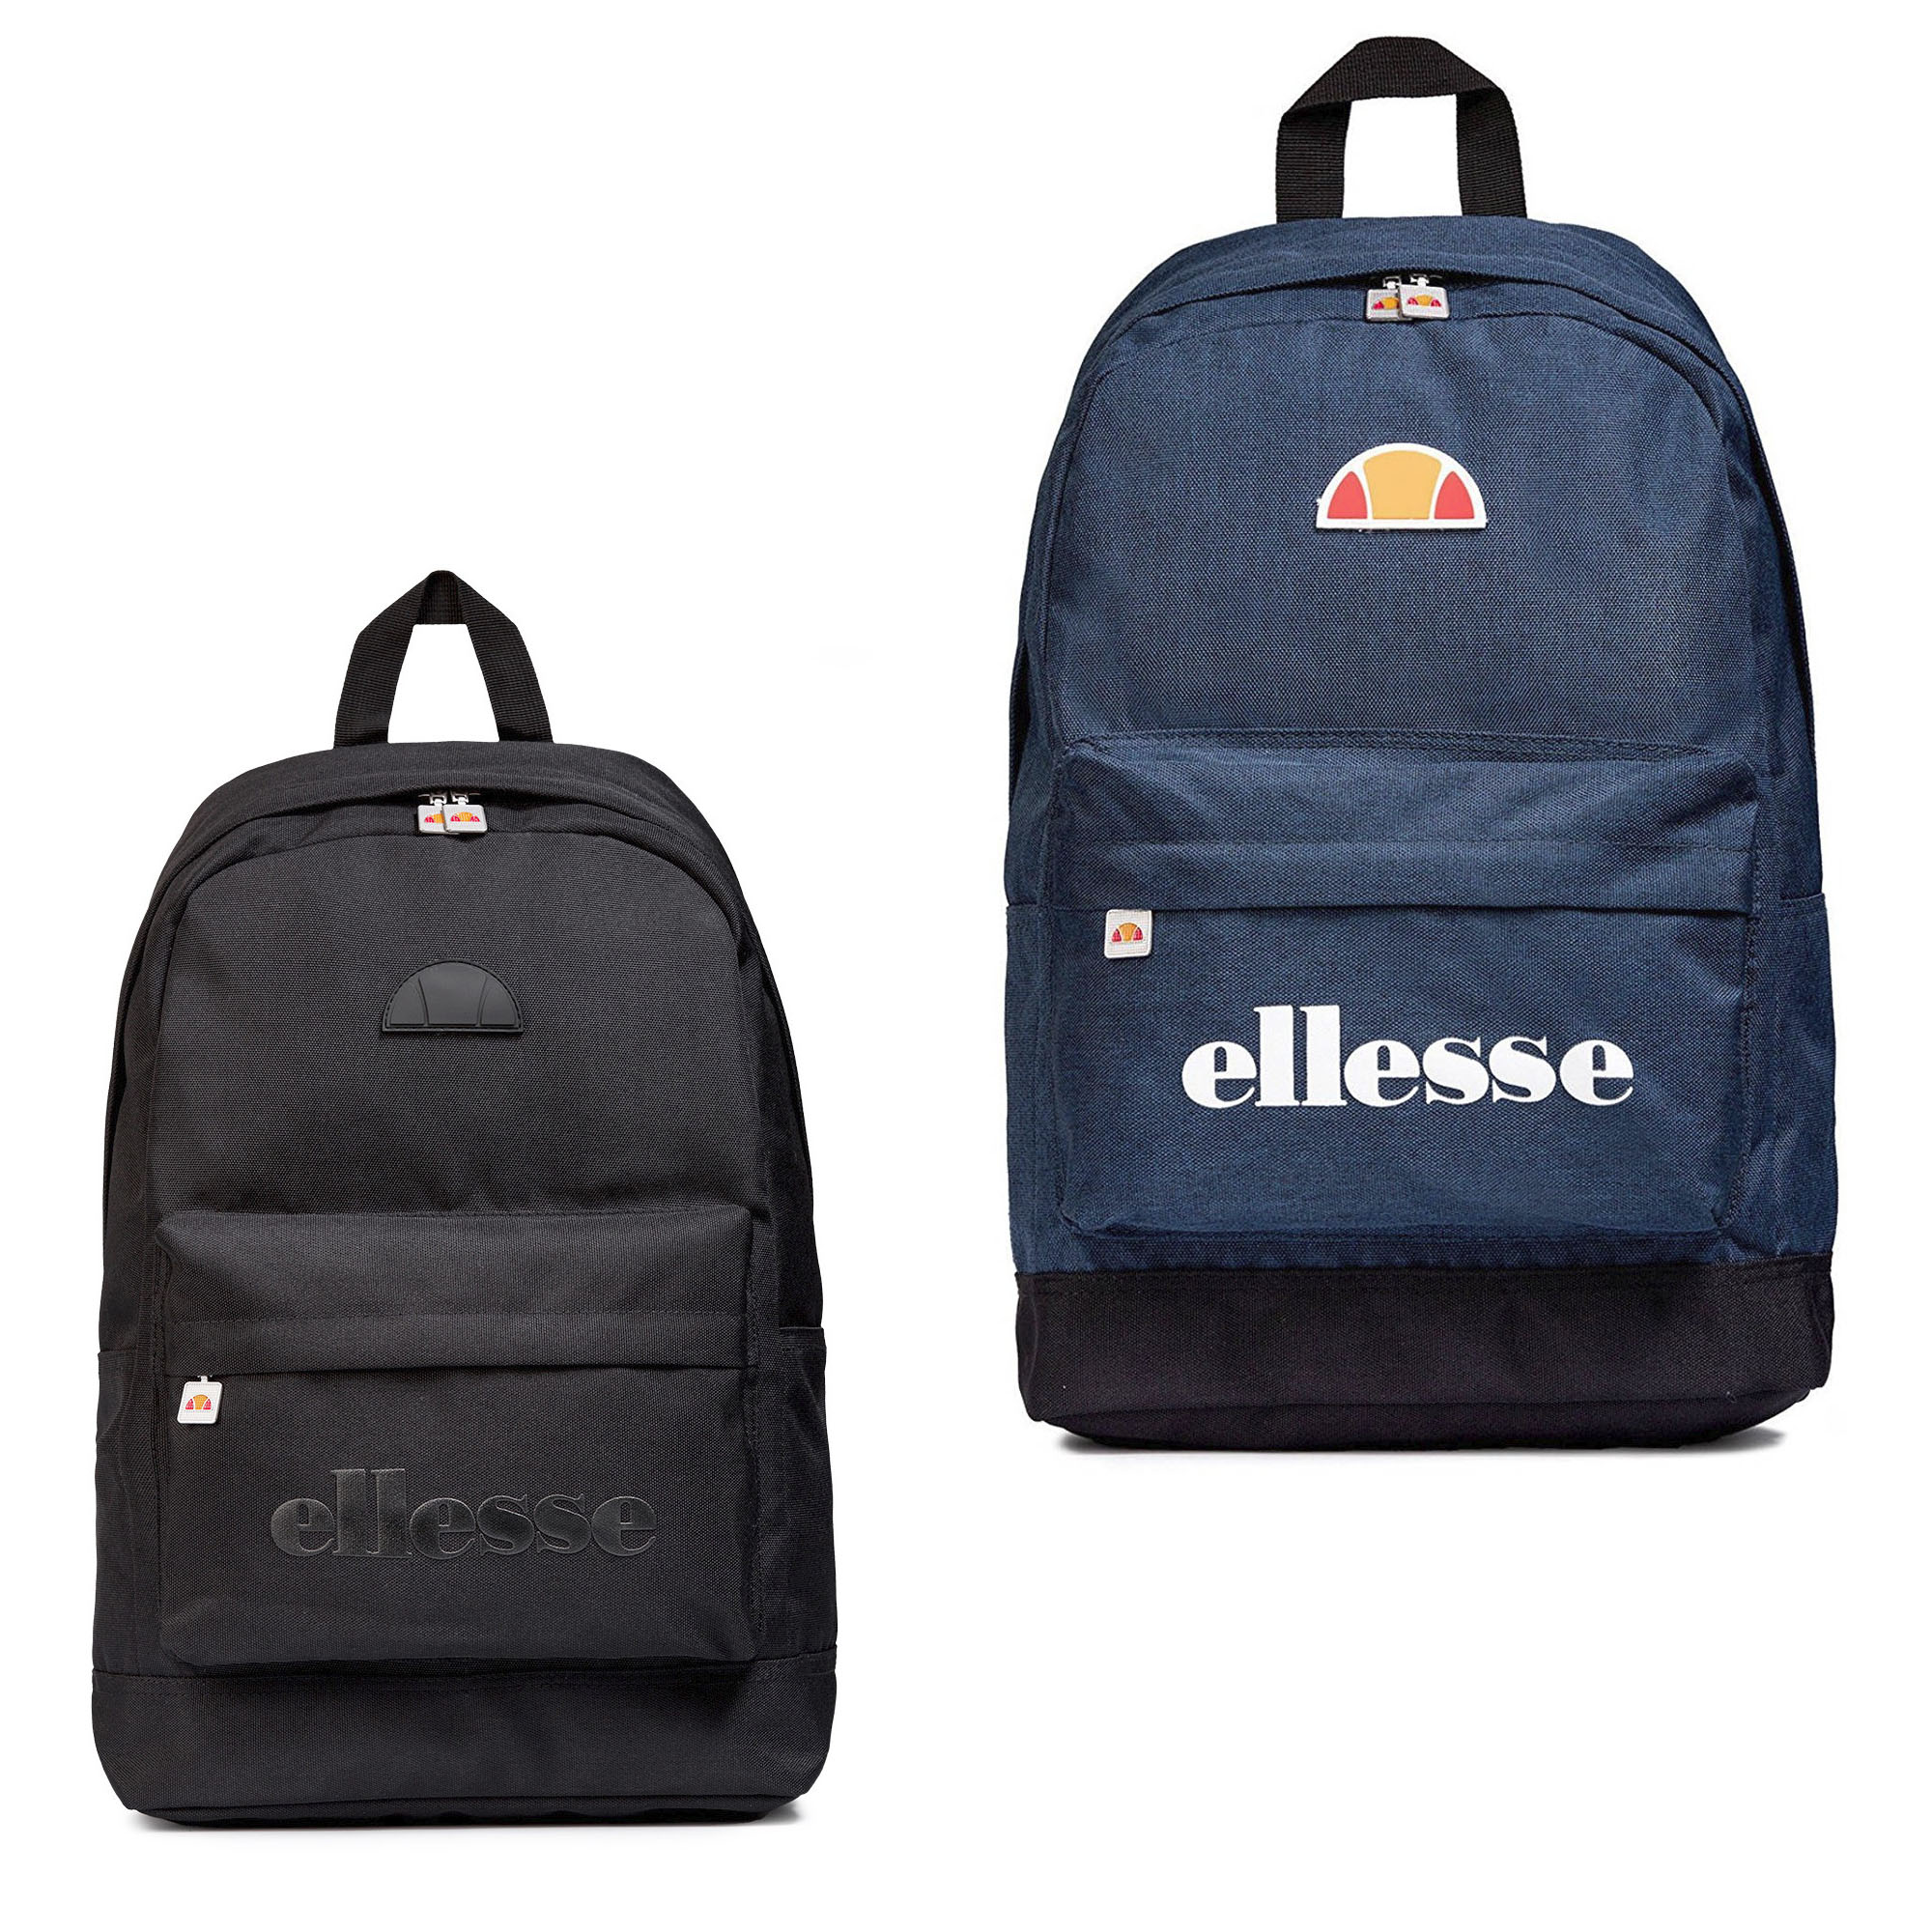 Details about Ellesse Heritage Regent II Backpack Rucksack School College  Sports Bag d8569da93b945